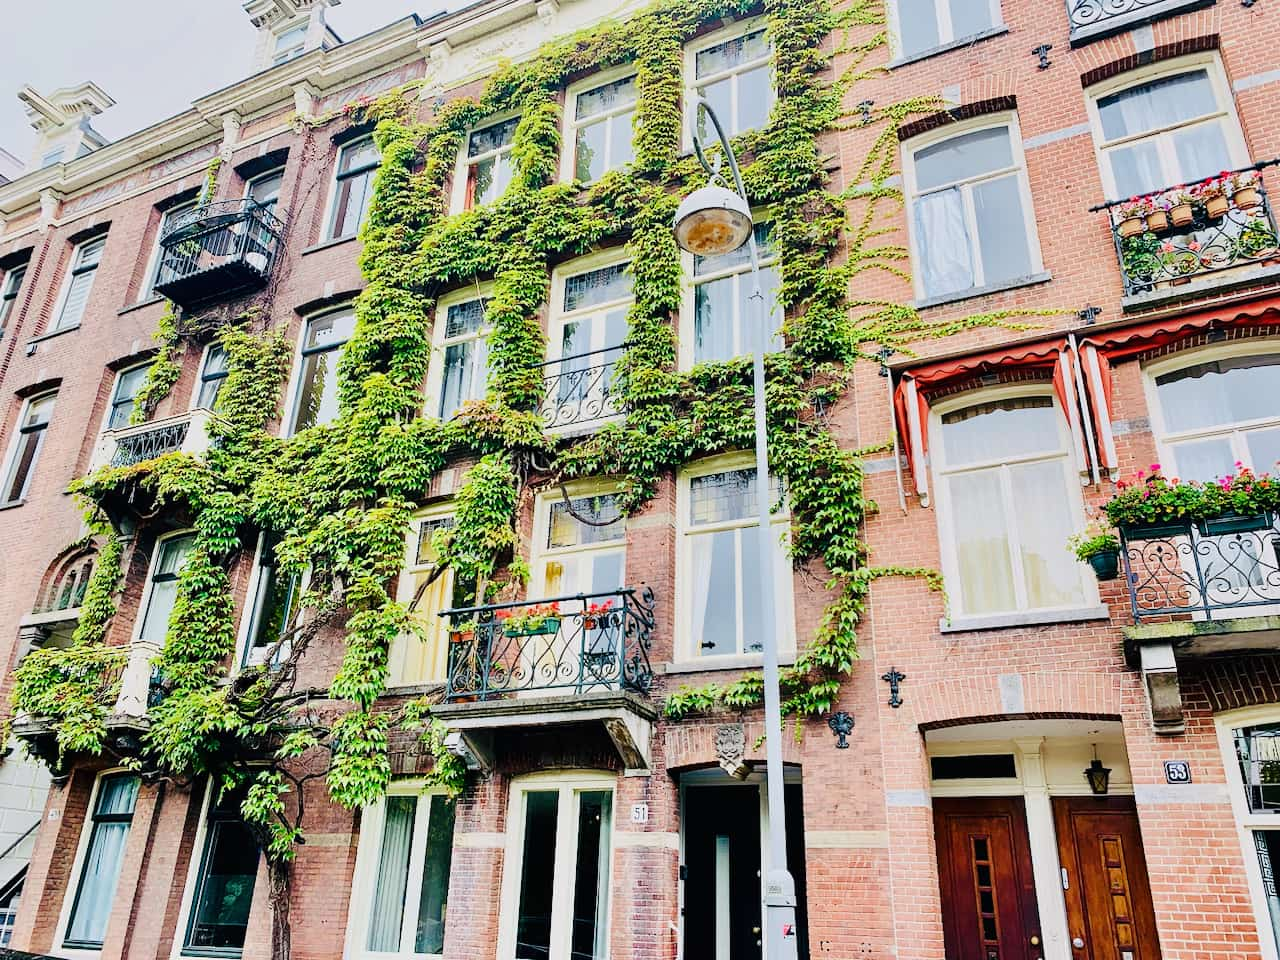 Discover hidden places of Amsterdam with this private walking tour